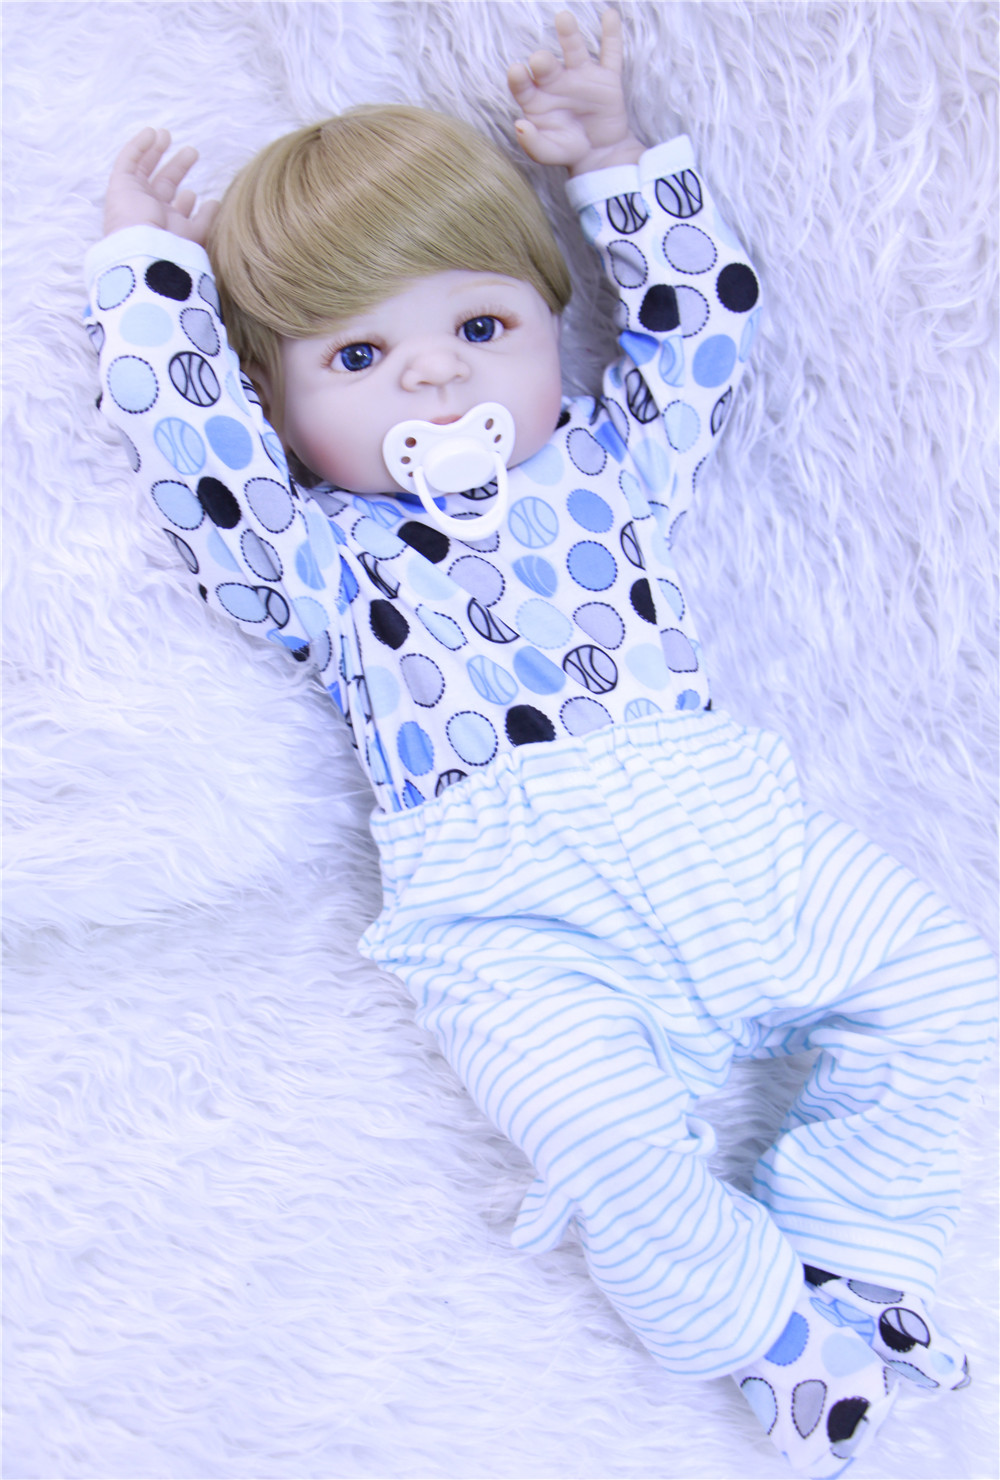 22-23inch Boneca Bebe Reborn Doll 55cm Full boy Body Silicone Doll Baby Real alive Bebe Reborn Menino blue eyes for girls toy 22 55cm cute giraffe boy silicone reborn baby dolls for girls 55cm bonecas bebe reborn soft menino blue eyes bebek bjd lol